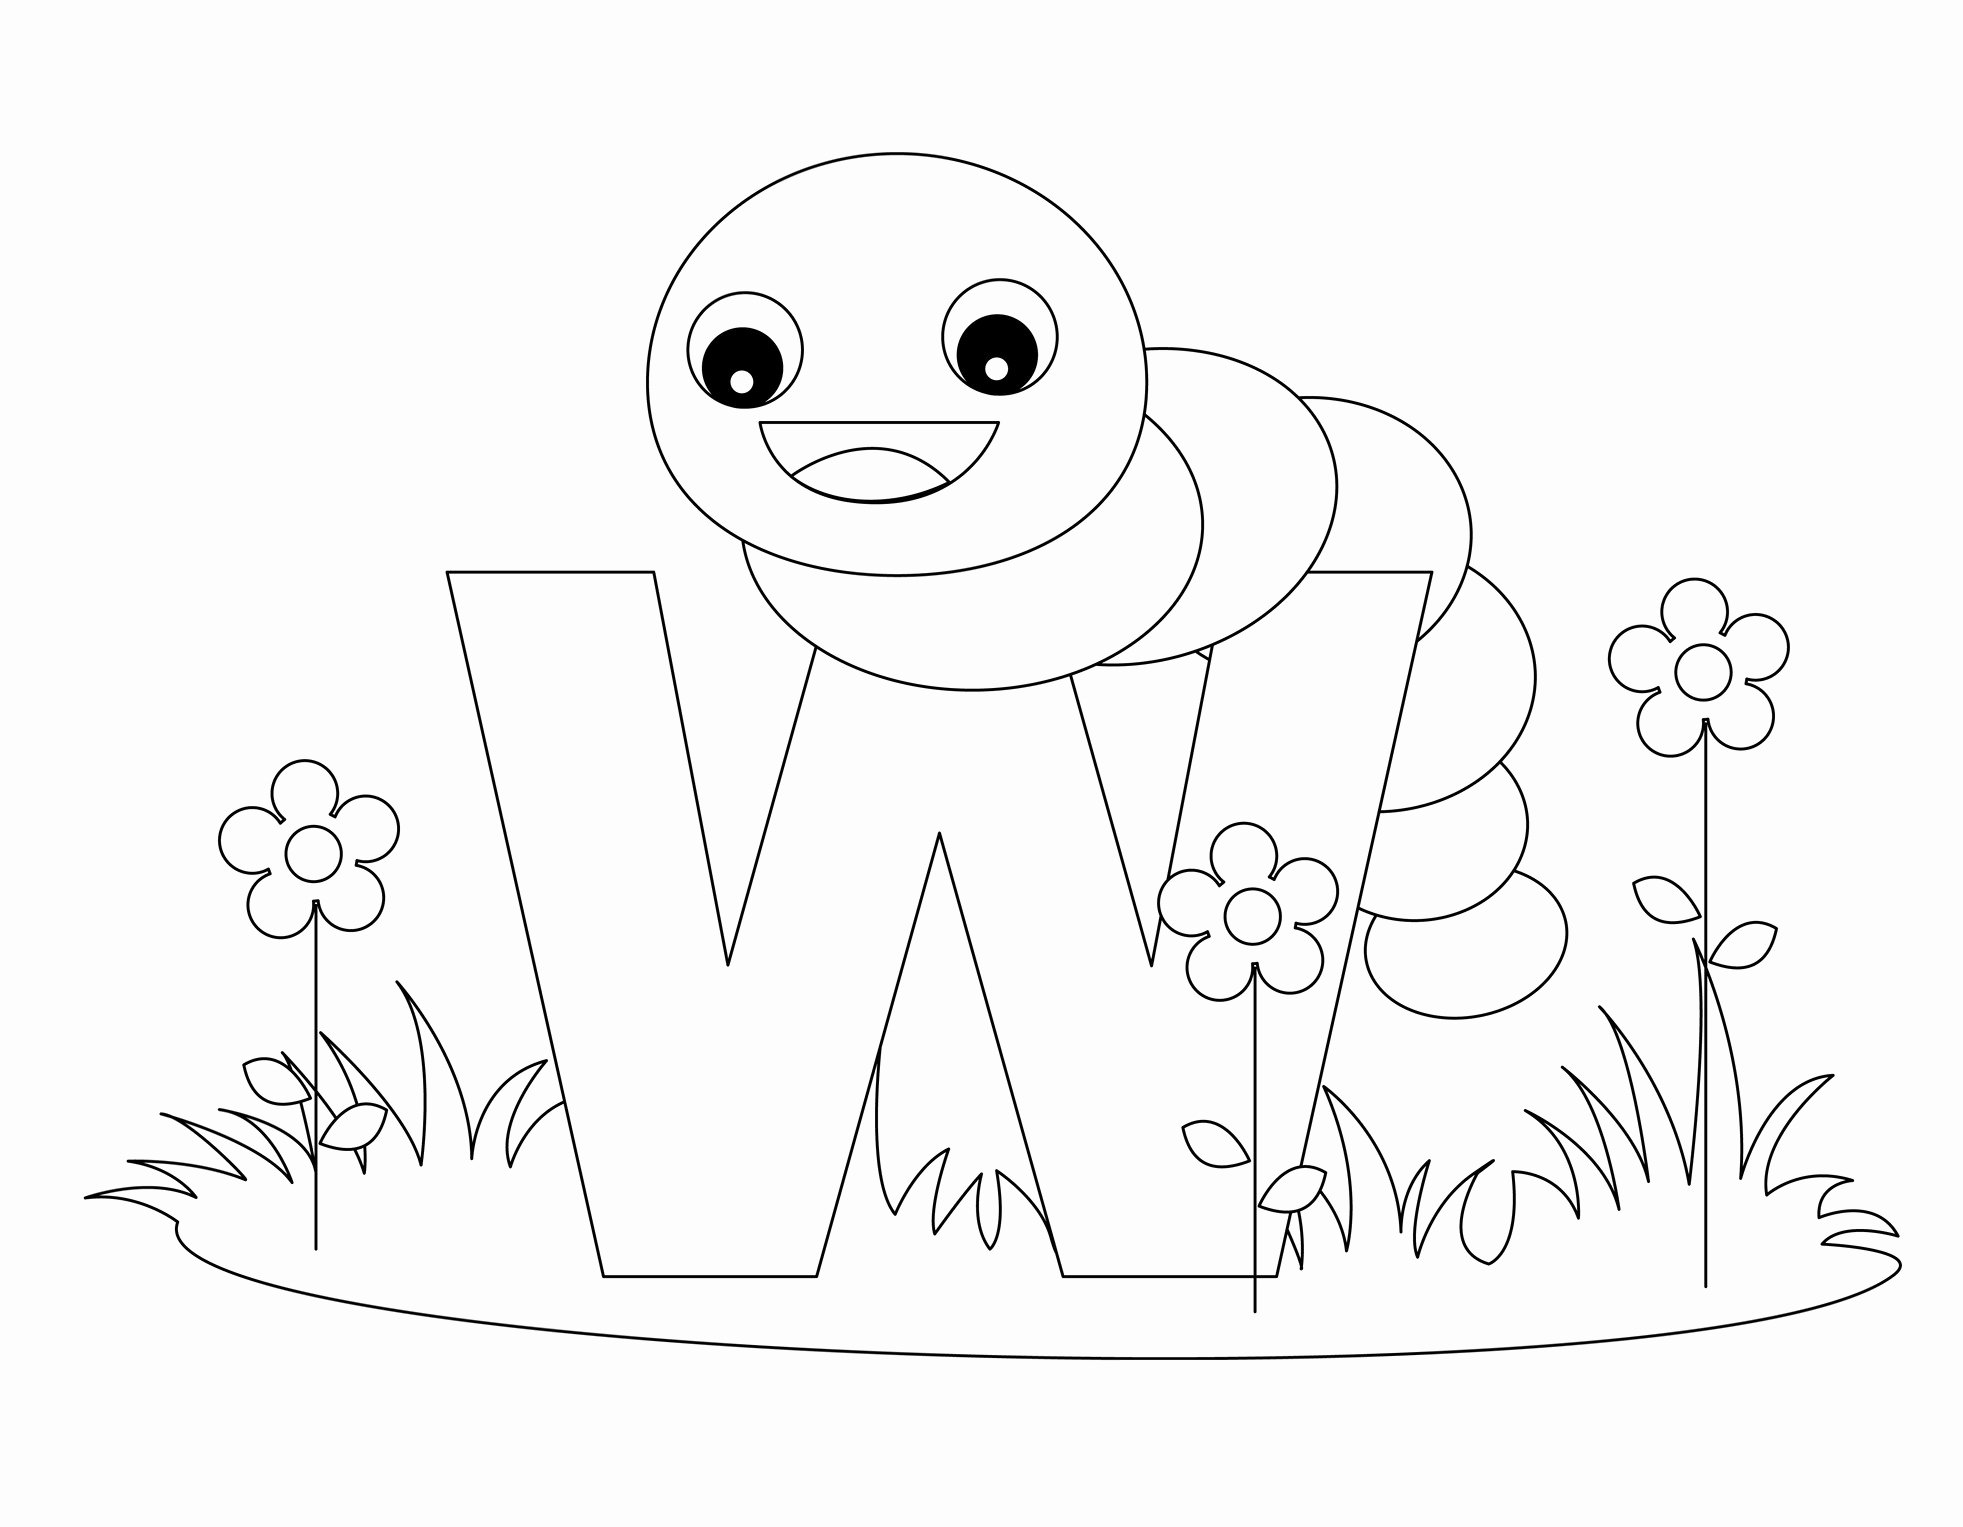 Letter A Printable Fresh Free Printable Alphabet Coloring Pages for Kids Best